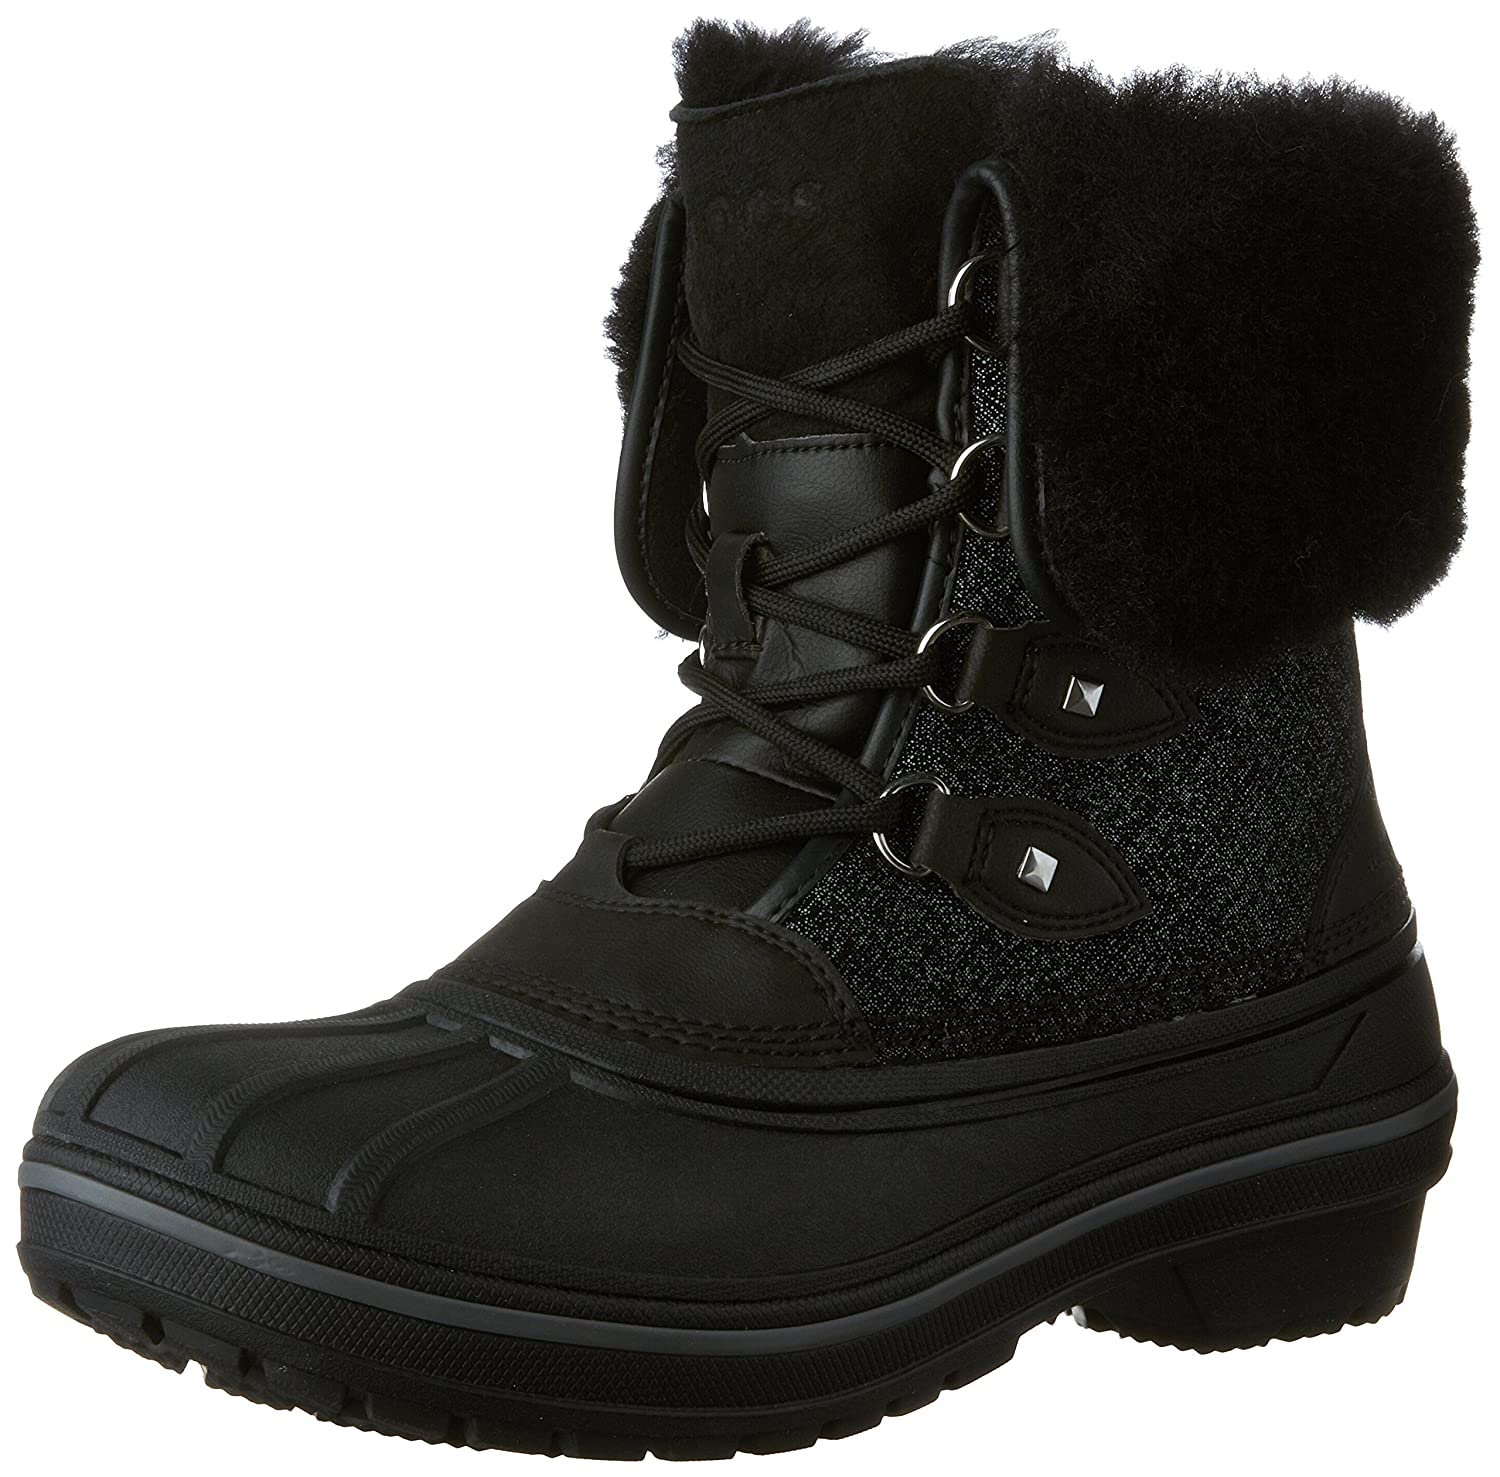 Amazon Best Sellers: Best Women's Snow Boots